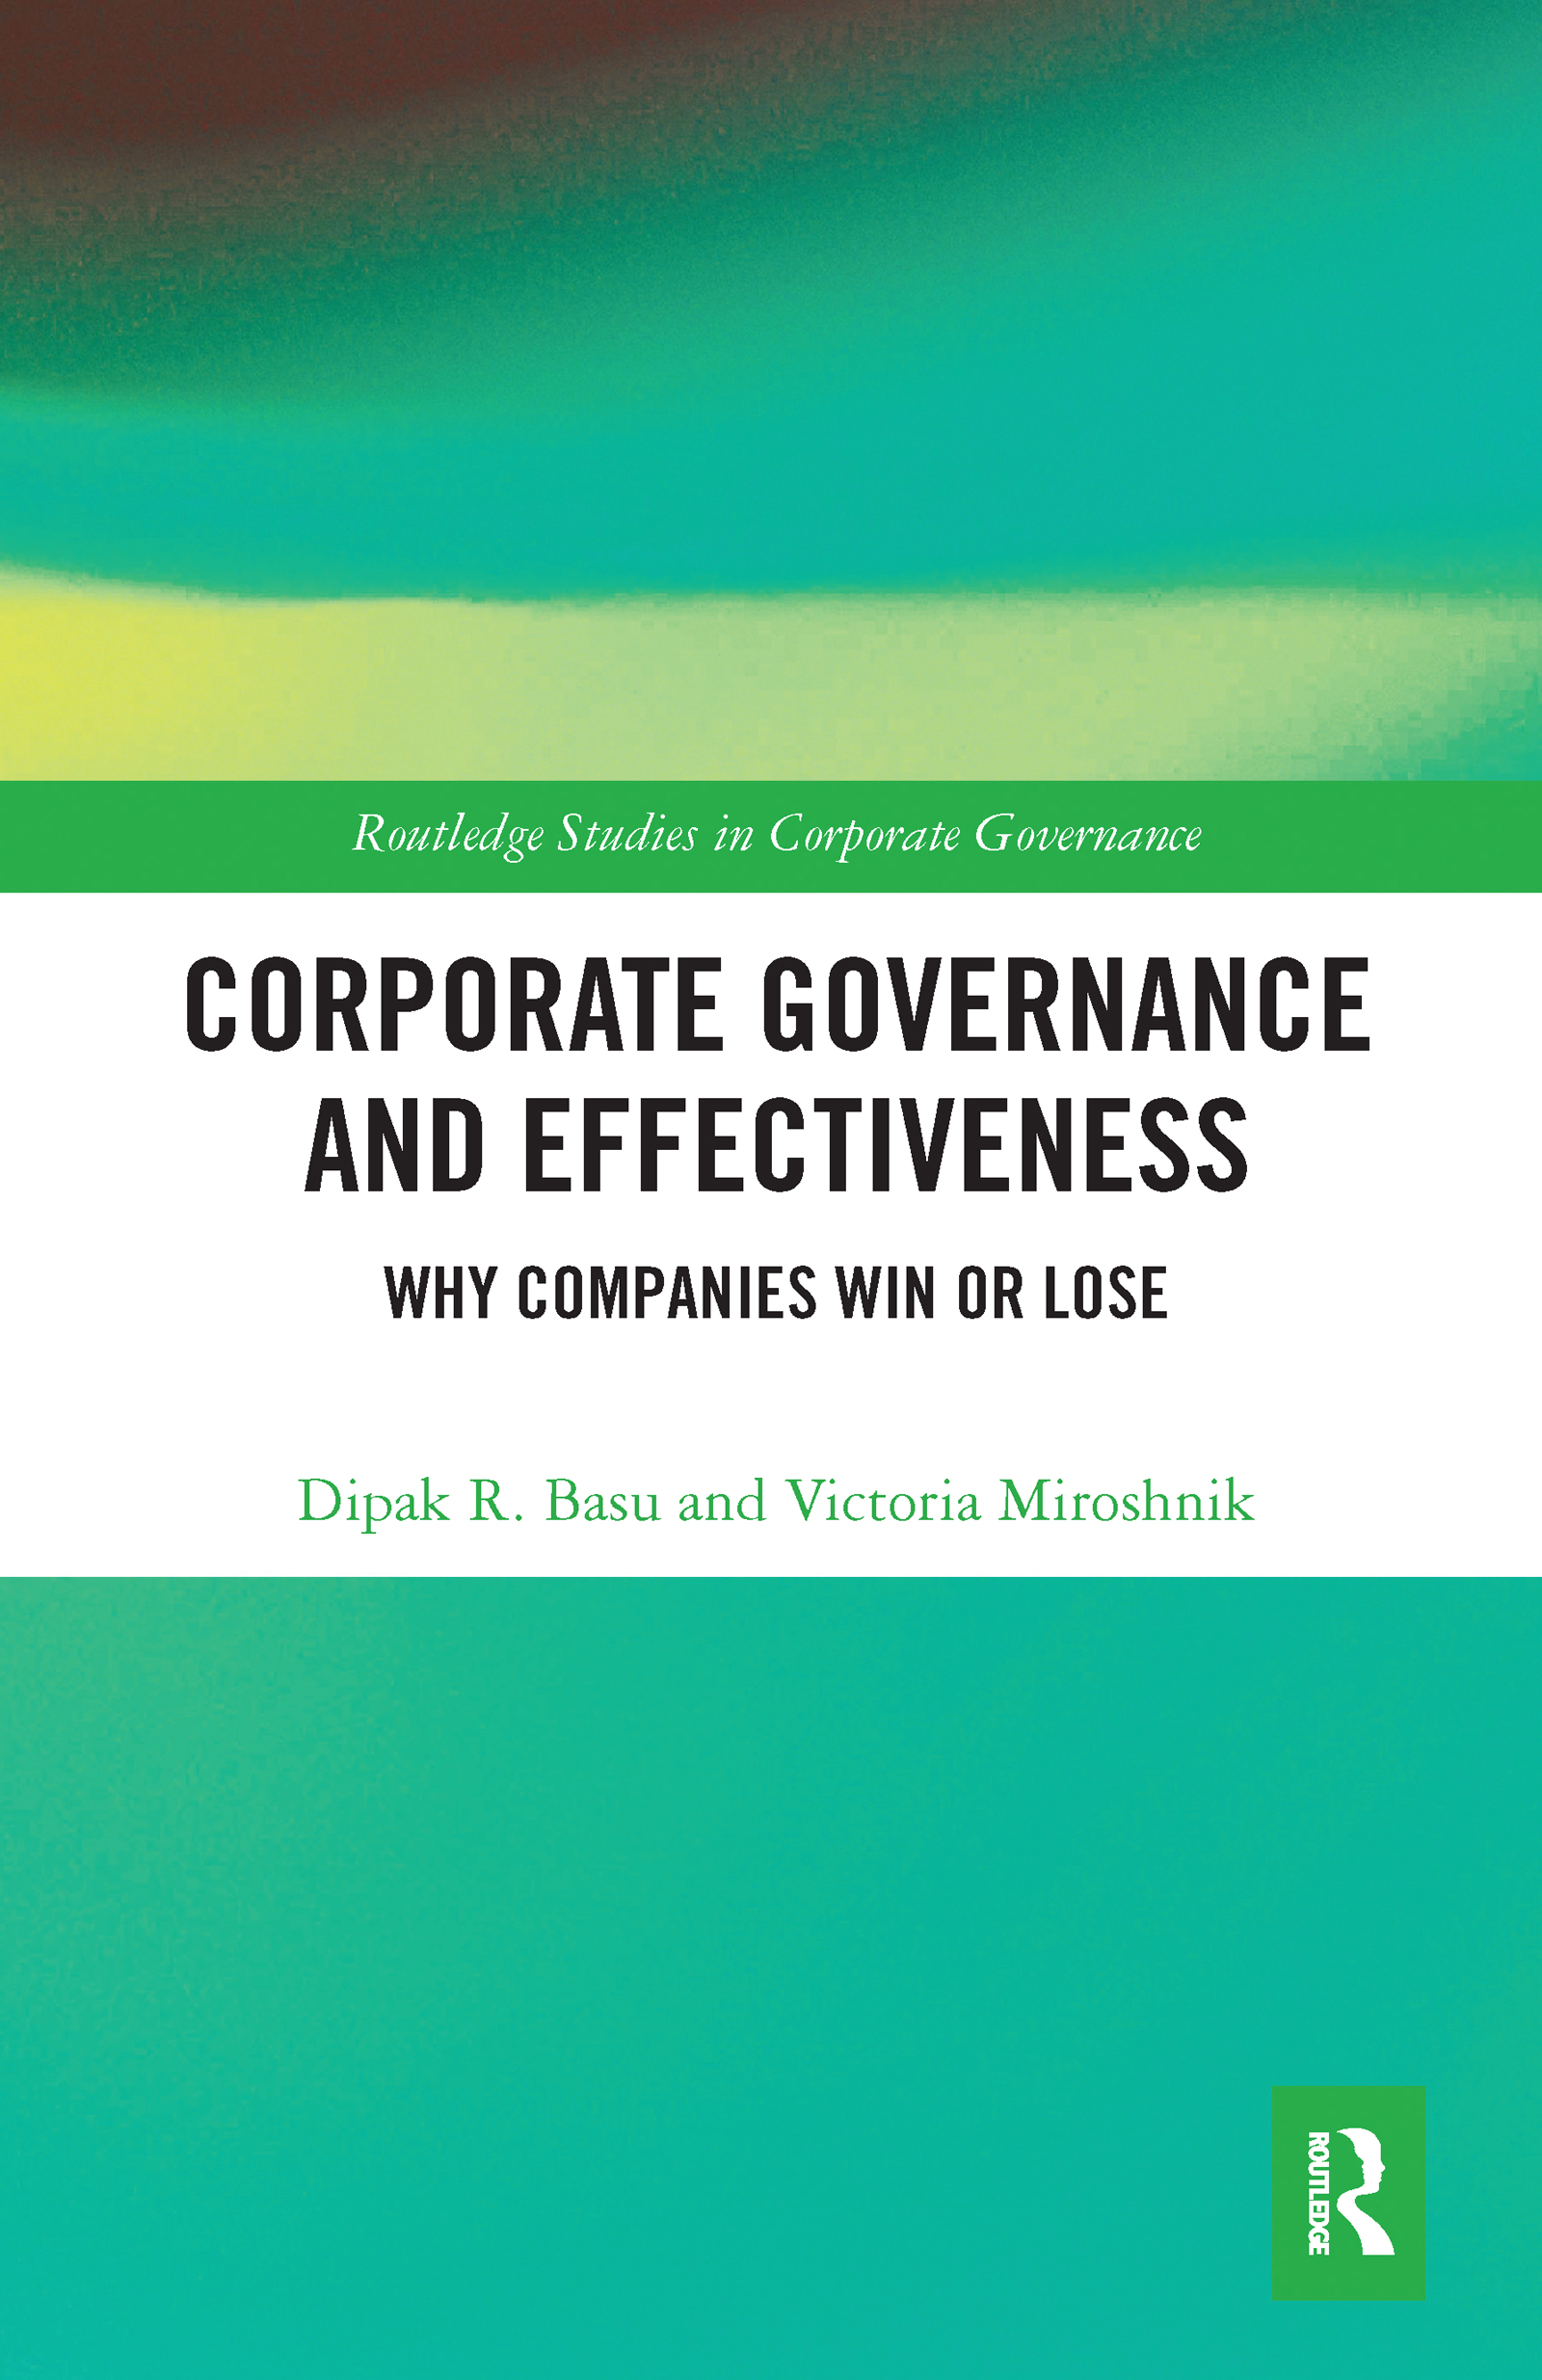 Corporate Governance and Effectiveness